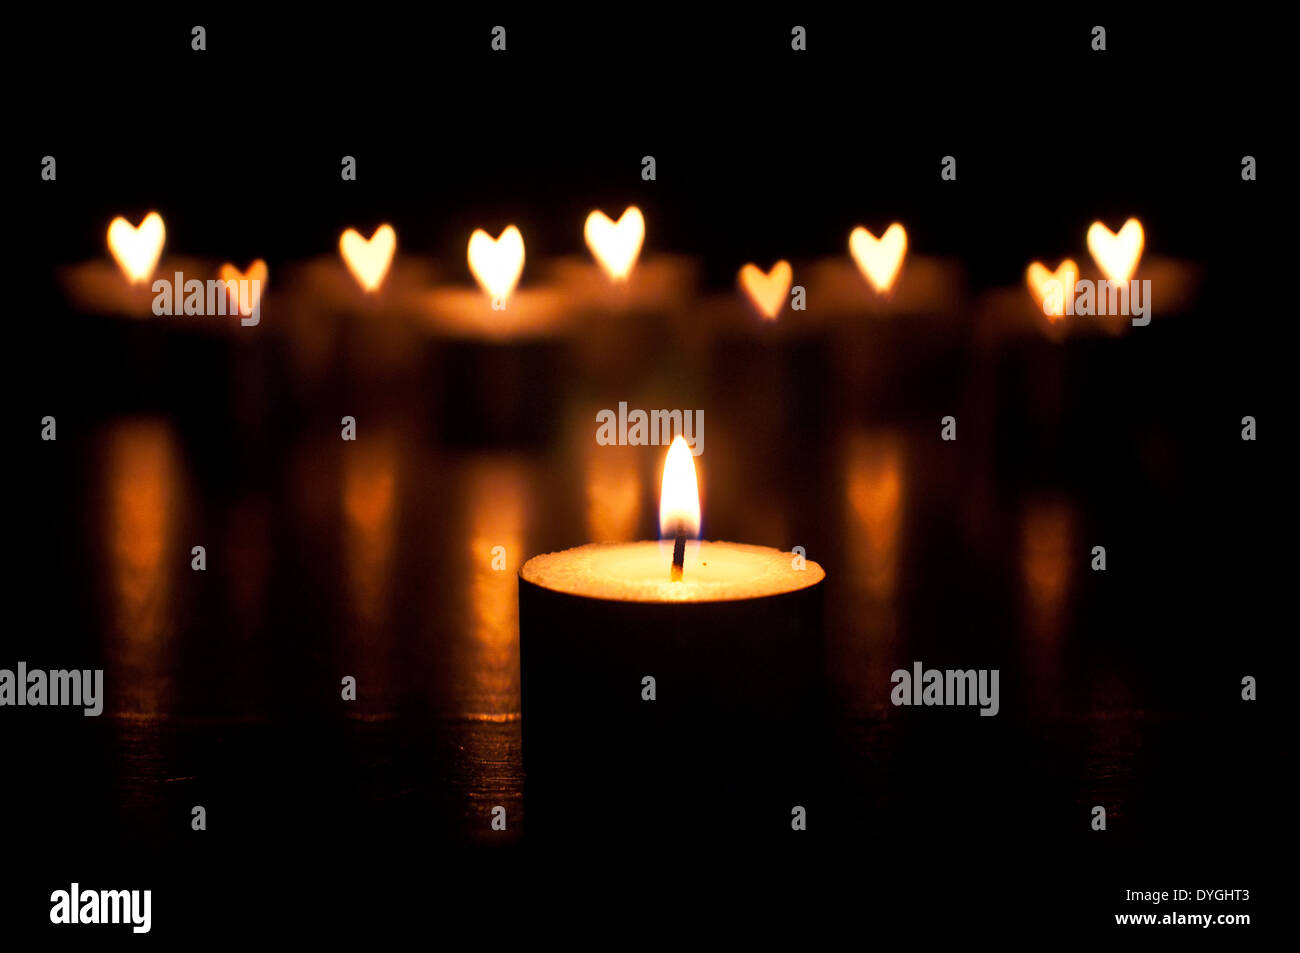 candles with out of focus flames in the shape of love hearts - Stock Image